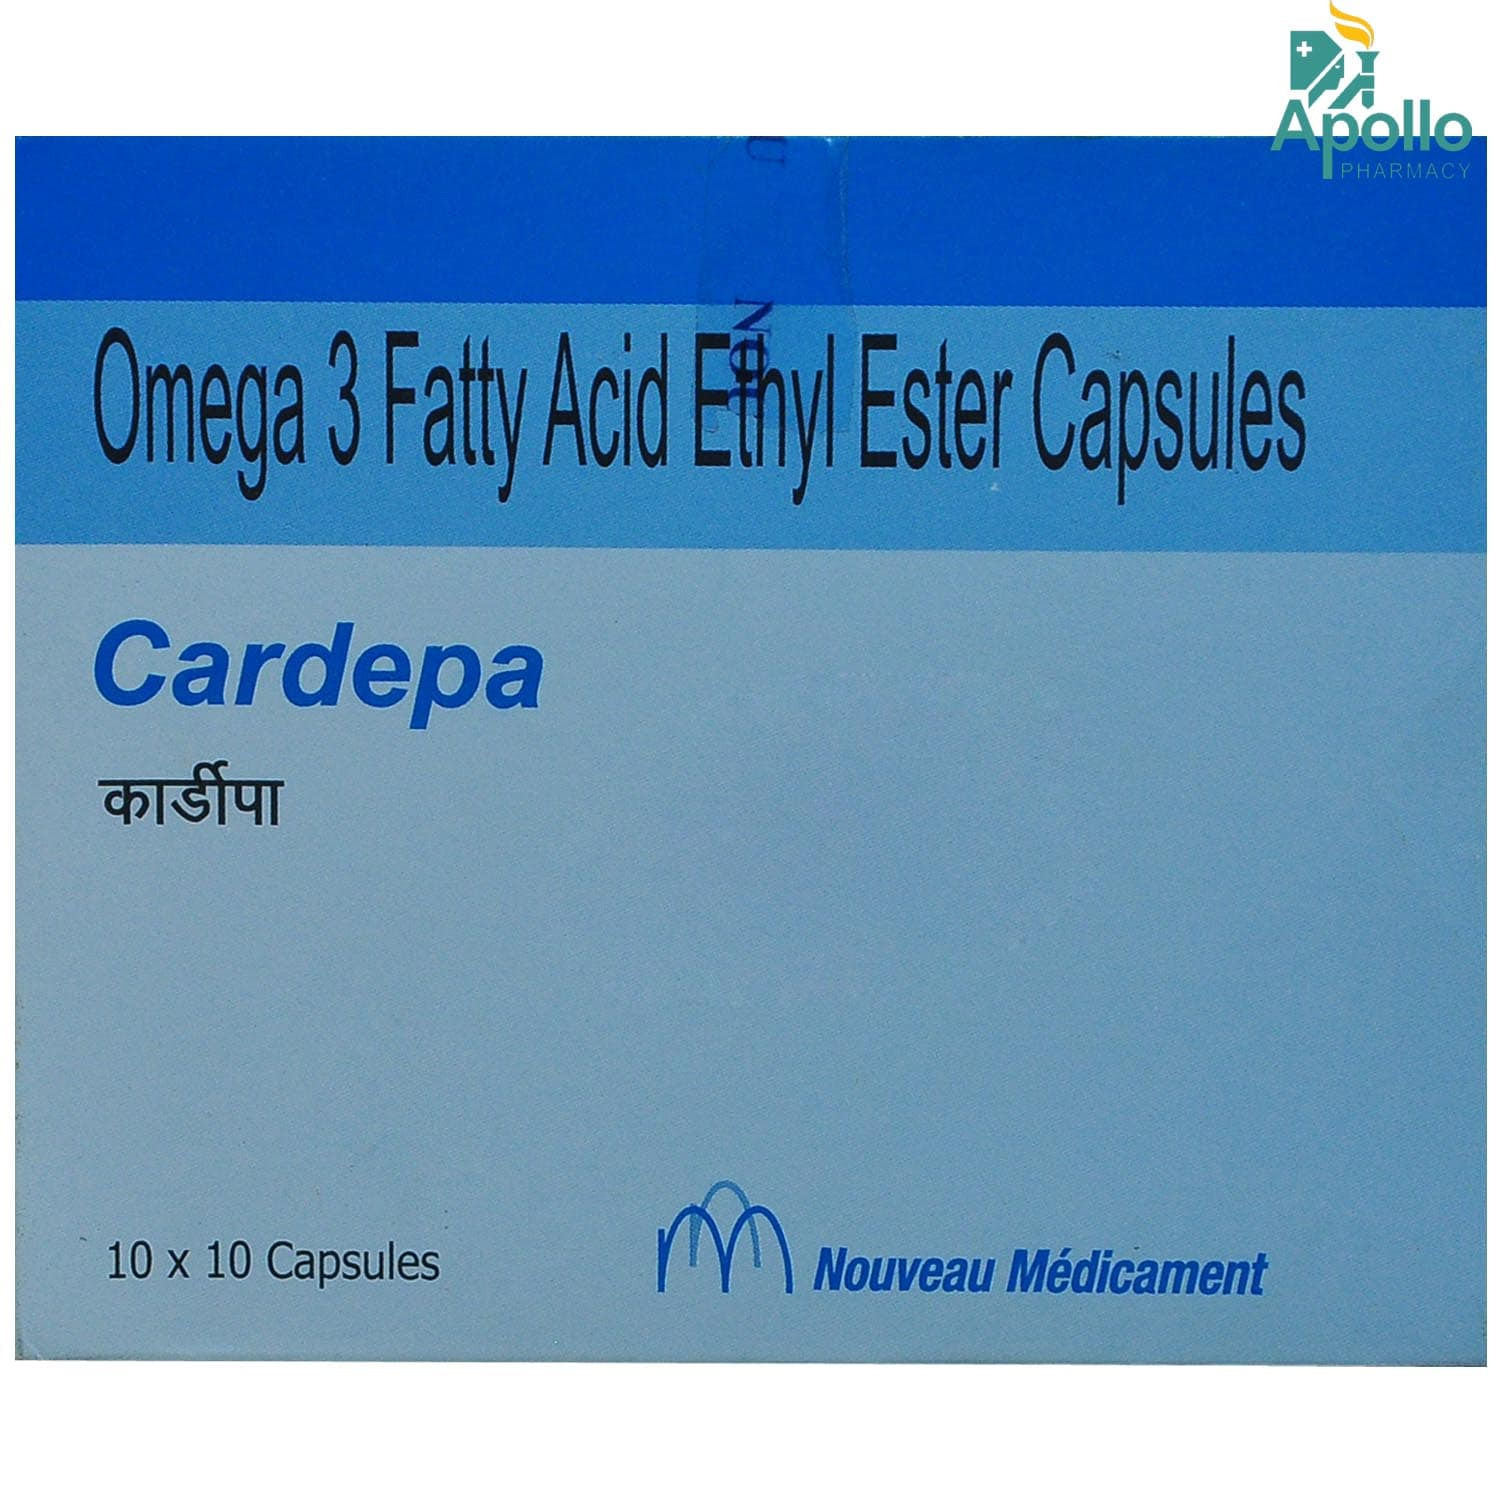 CARDEPA TABLET